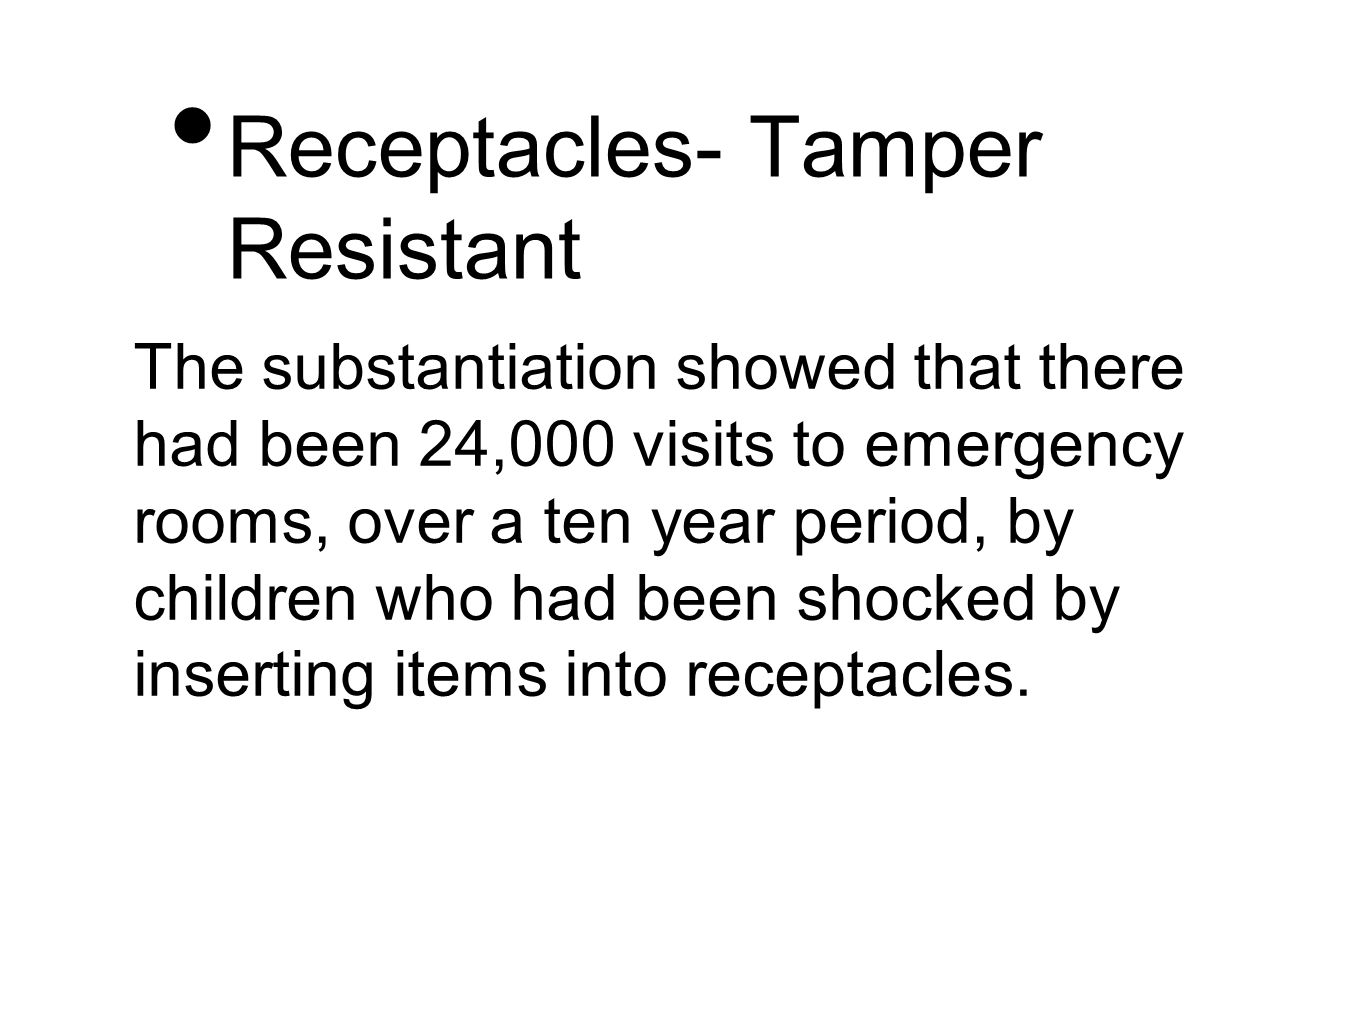 Receptacles- Tamper Resistant The substantiation showed that there had been 24,000 visits to emergency rooms, over a ten year period, by children who had been shocked by inserting items into receptacles.